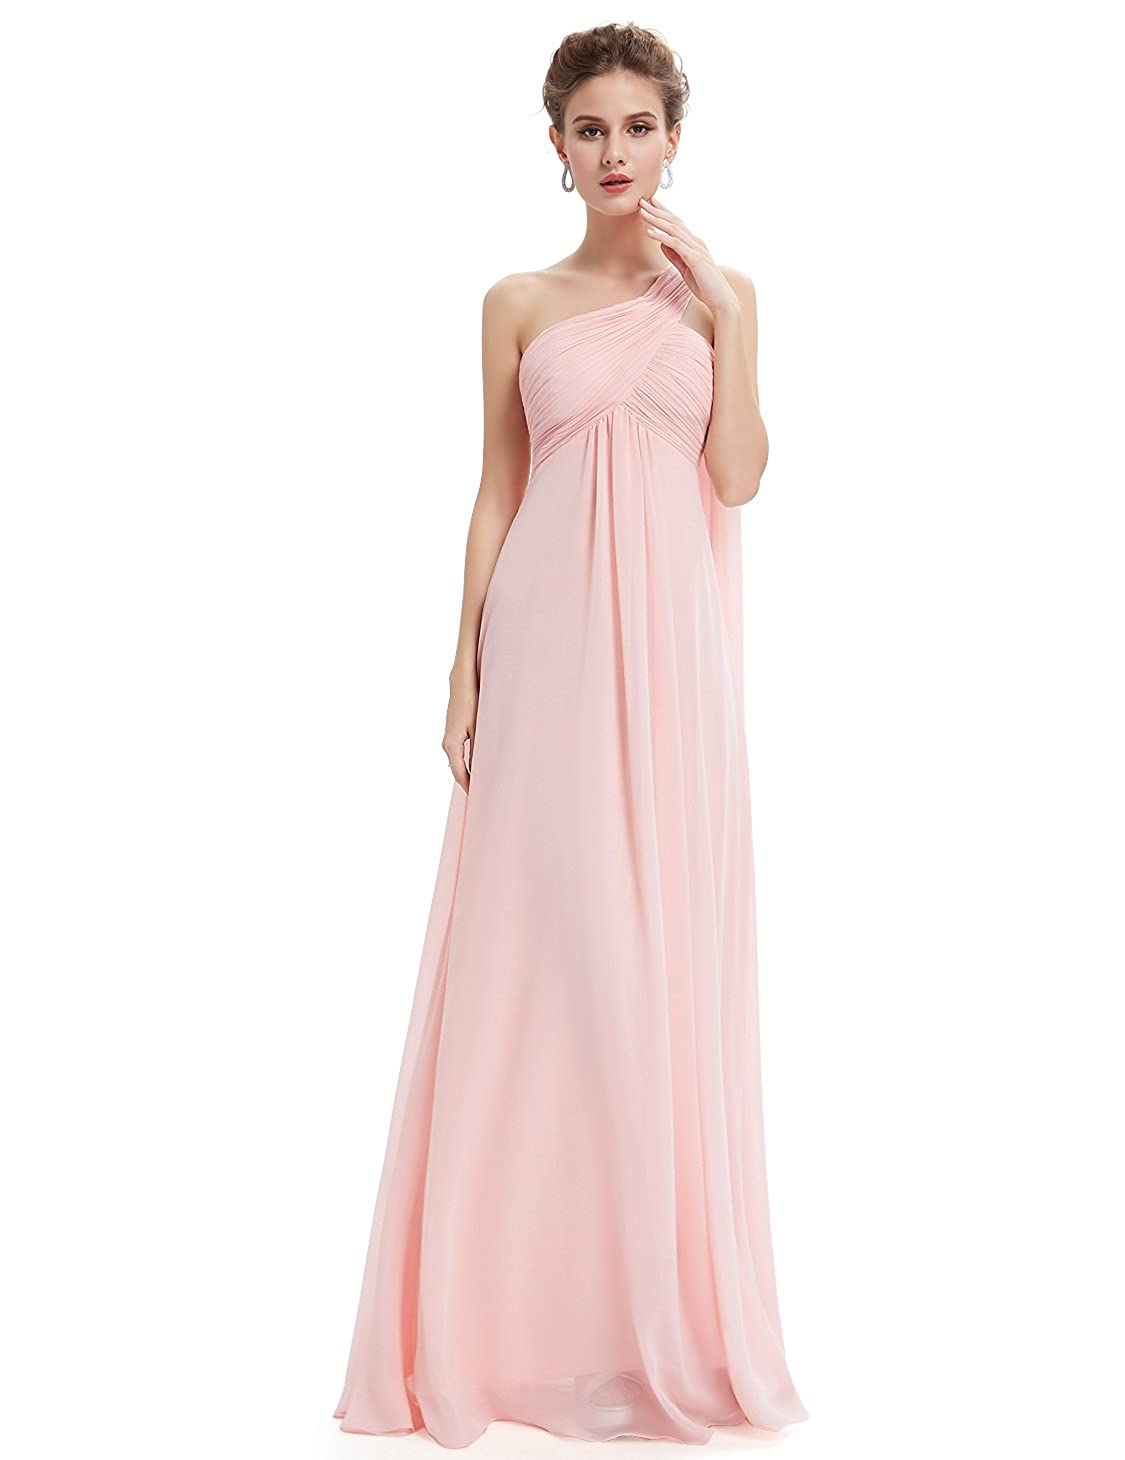 1960s Evening Dresses, Bridesmaids, Mothers Gowns Ever Pretty Womens One-Shoulder Evening Gown $56.99 AT vintagedancer.com